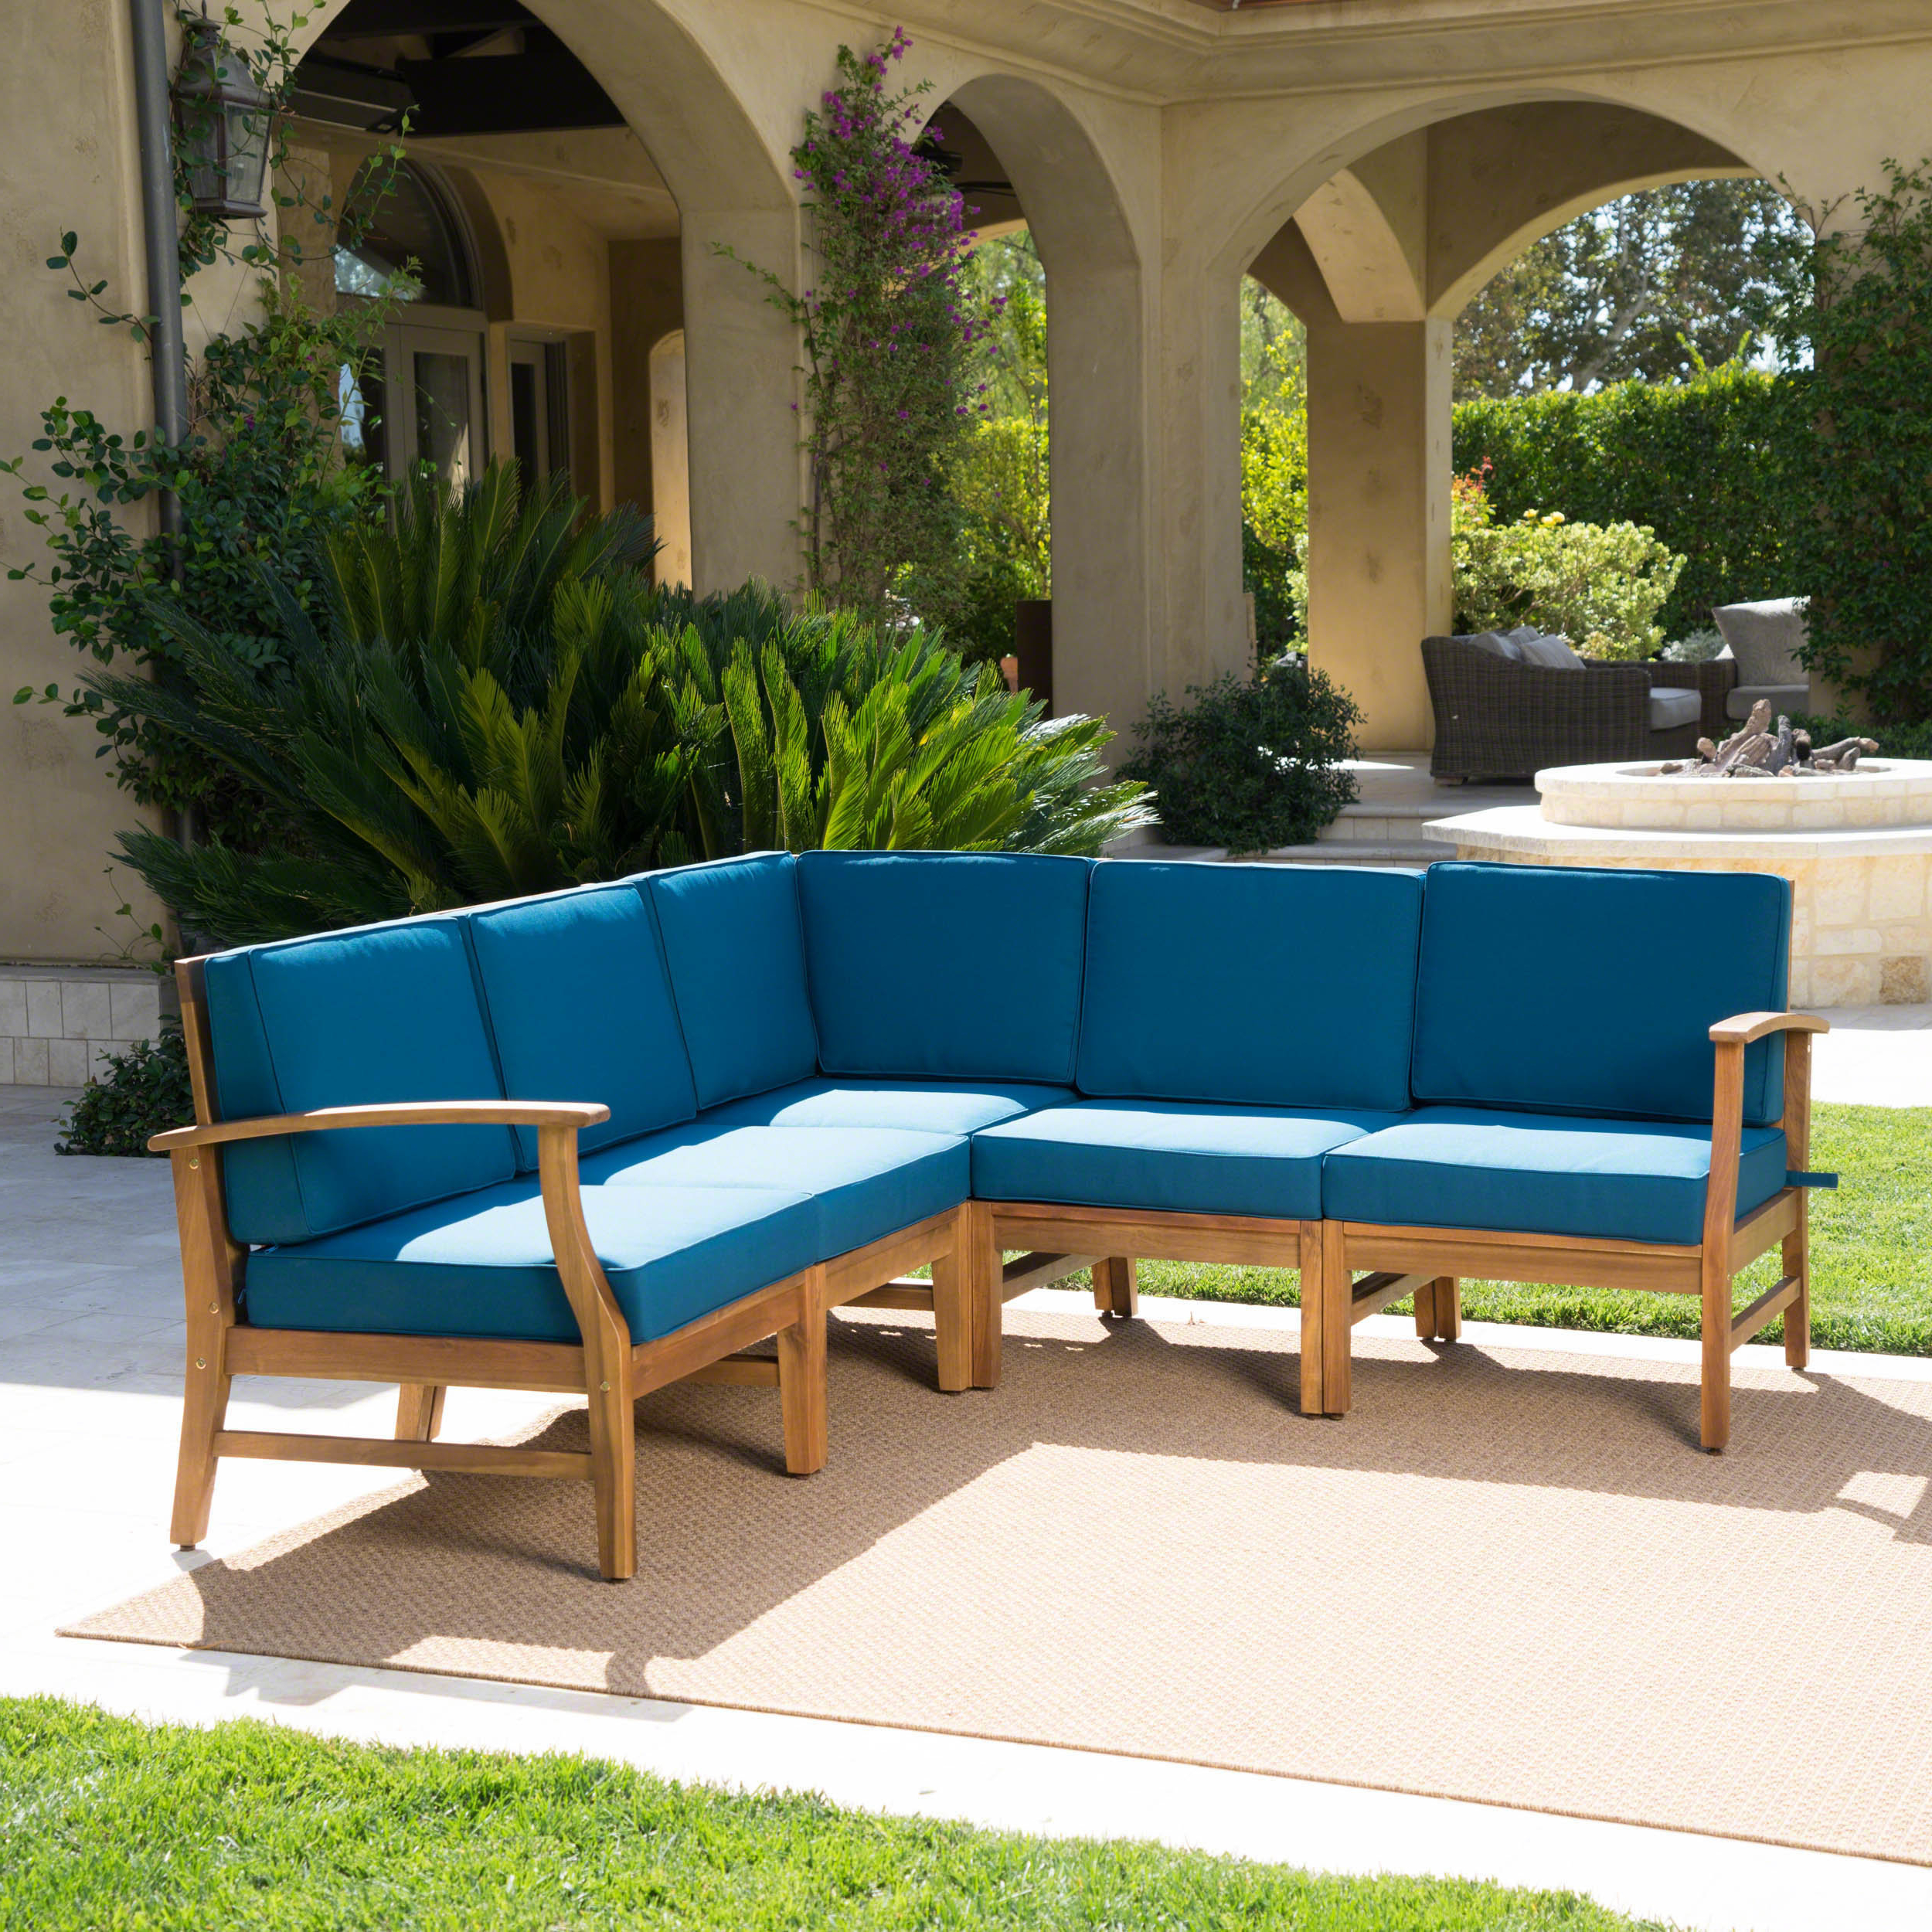 Antonia Teak Patio Sectionals With Cushions Within Preferred Antonia Teak Patio Sectional With Cushions (View 11 of 25)